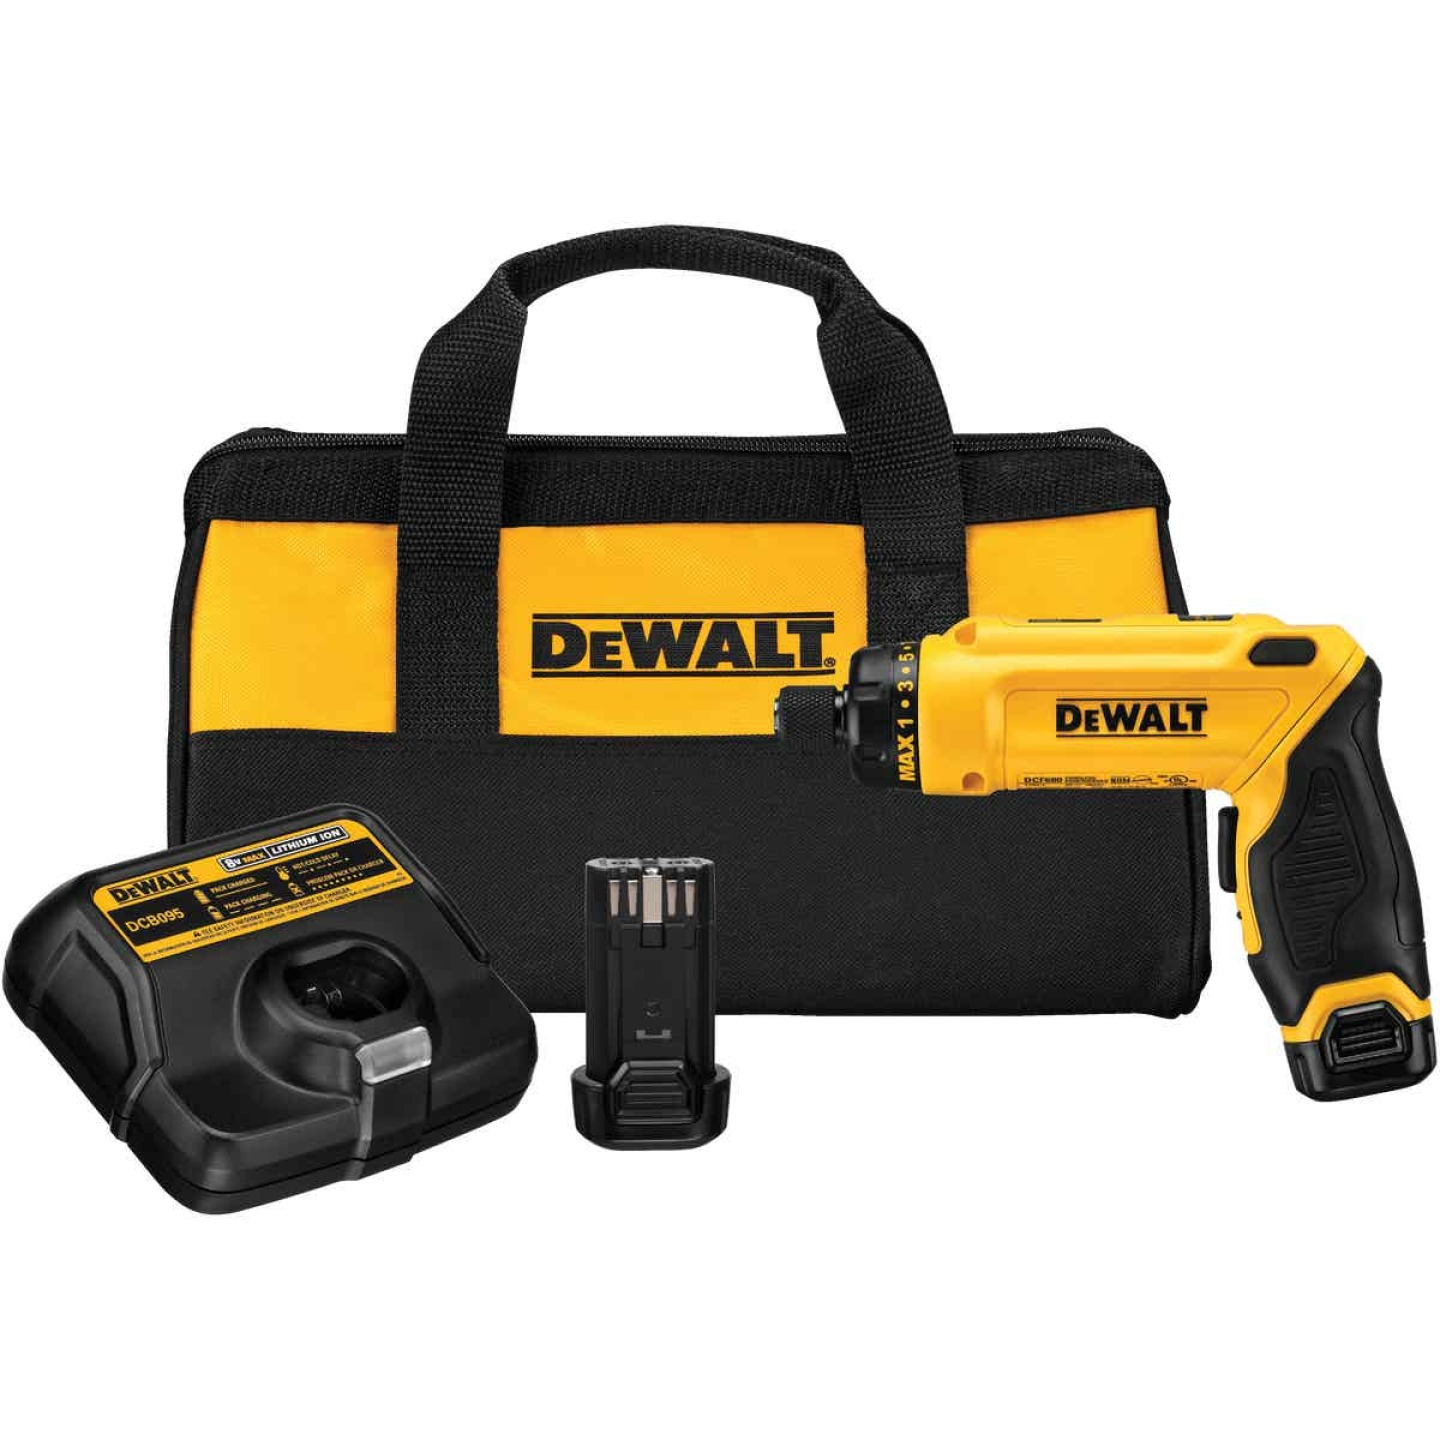 DeWalt 8-Volt MAX Lithium-Ion Gyroscopic 1/4 In. Cordless Screwdriver Kit (2-Battery) Image 1